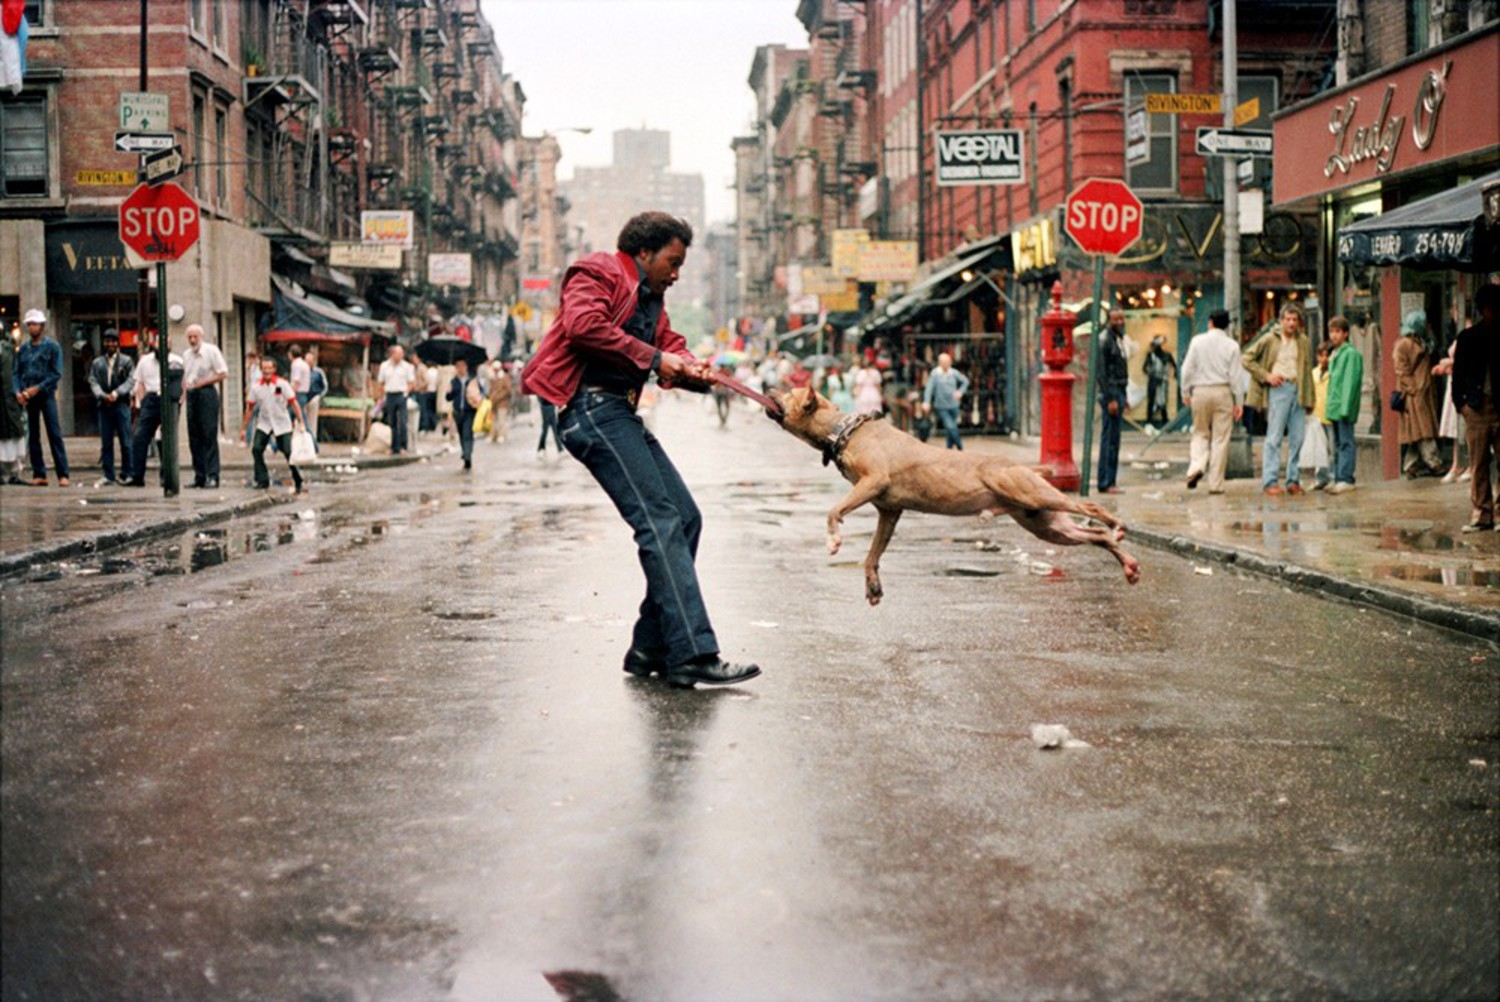 Man and Dog, The Lower East Side, NY 1980